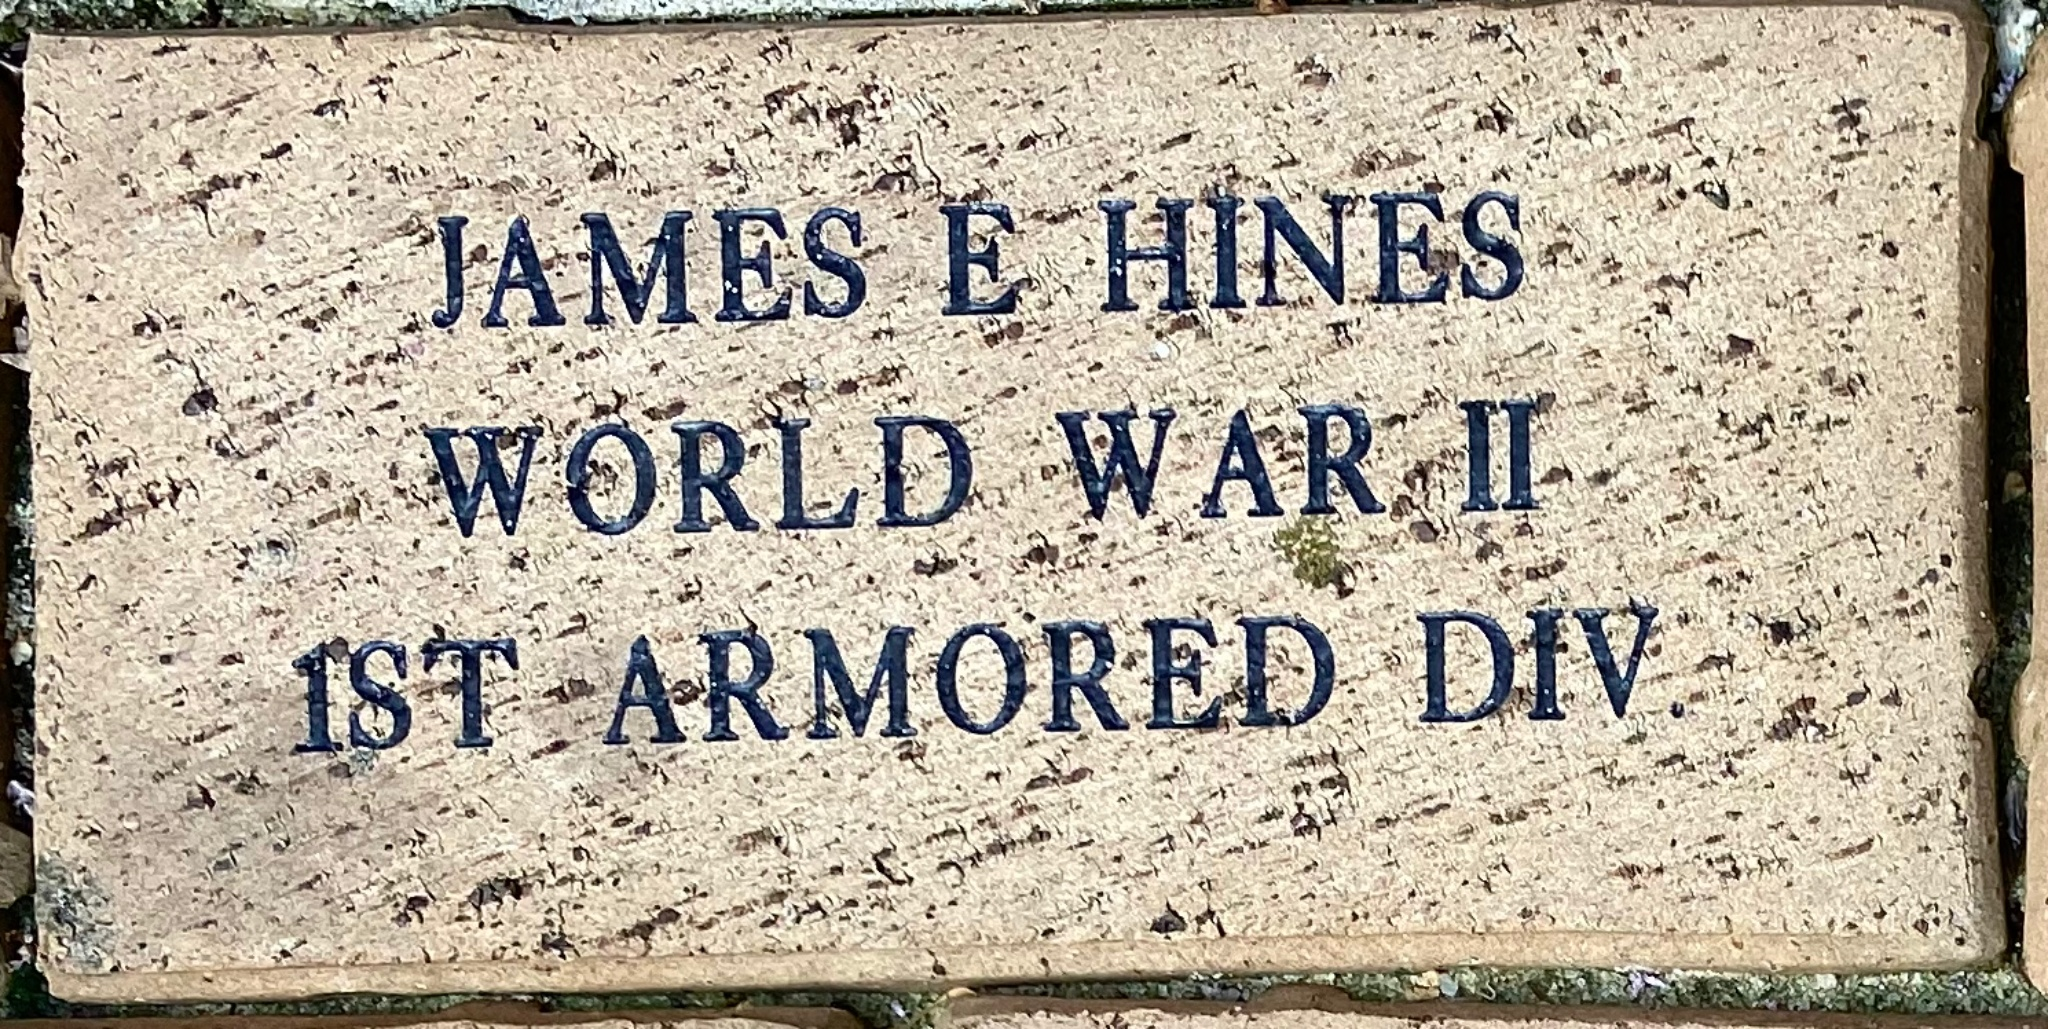 JAMES E HINES WORLD WAR II 1ST ARMORED DIV